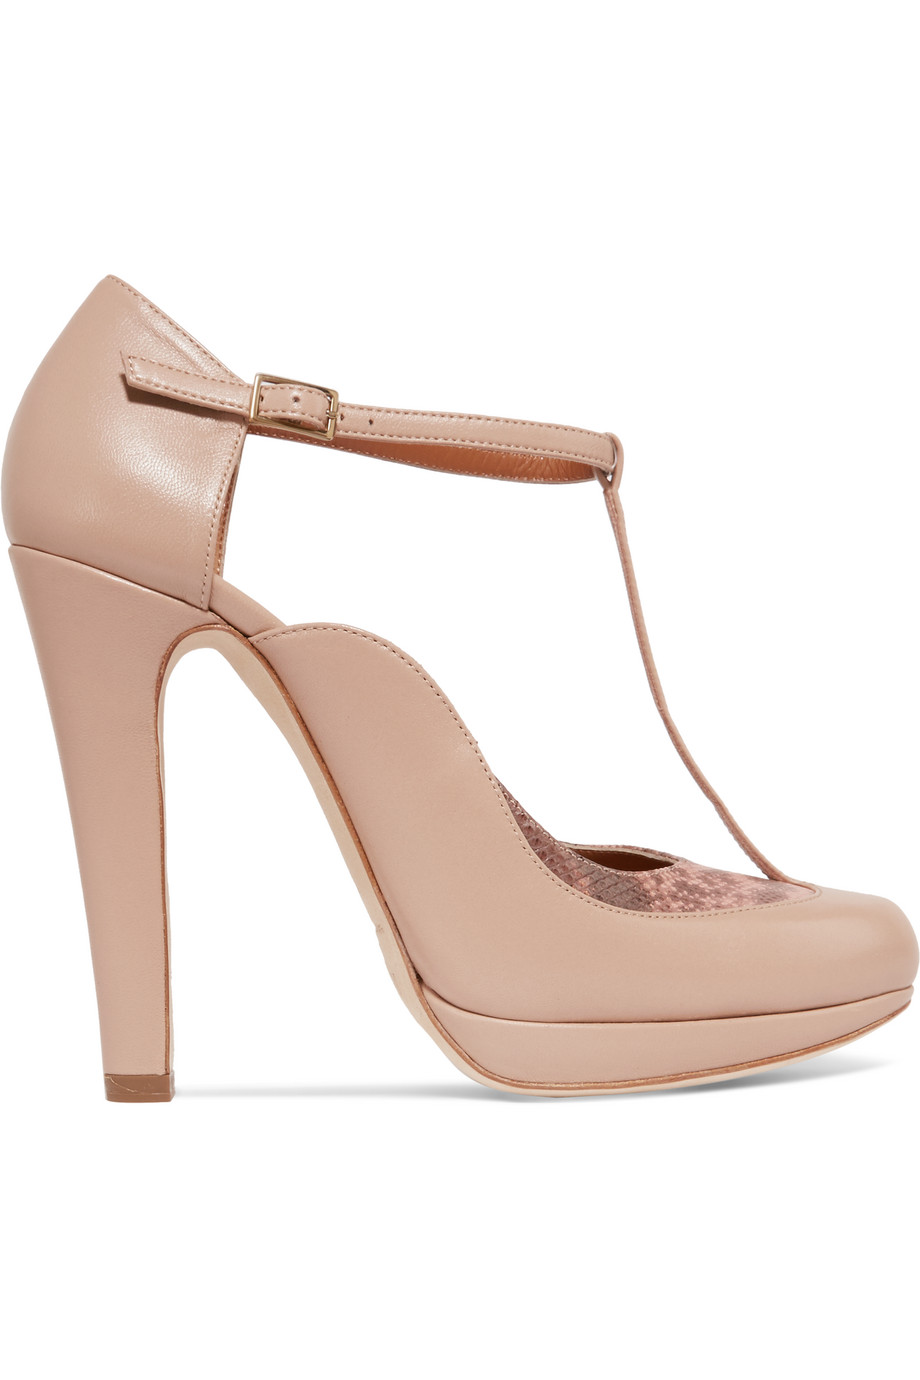 Linda Snake-Trimmed Leather Mary Jane Pumps, Antique Rose/Neutral, Women's US Size: 8, Size: 38.5